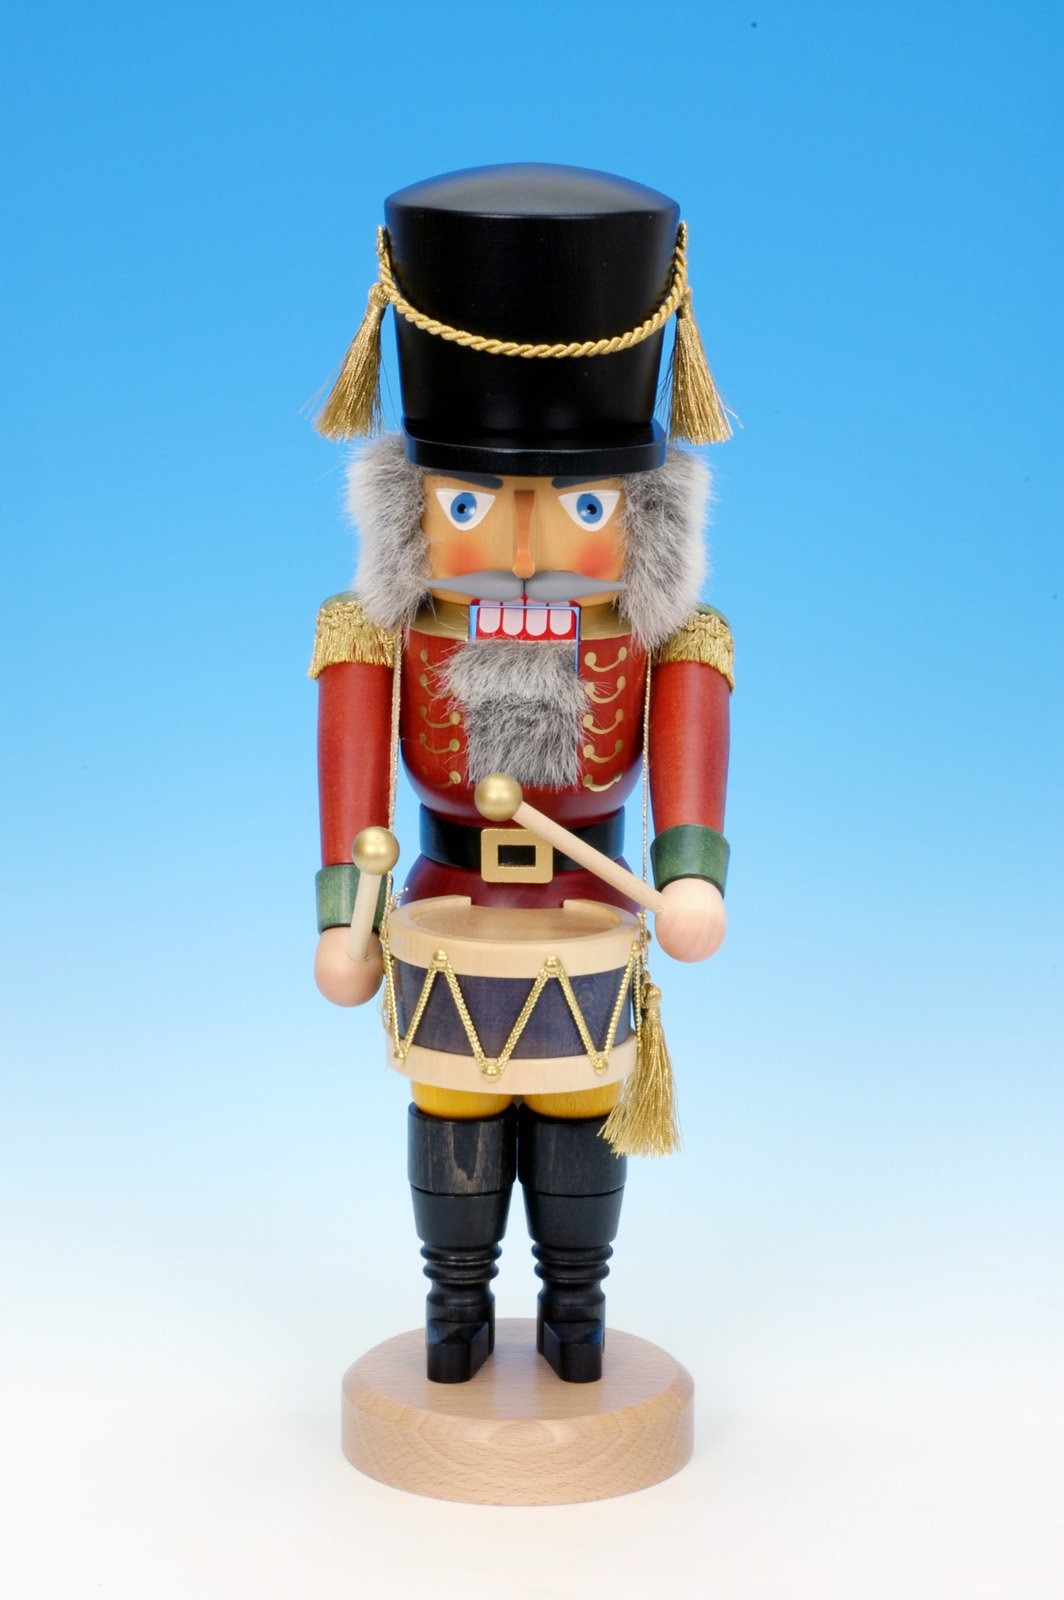 Christian Ulbricht Nutcracker - Drummer Red - Glazed by Christian Ulbricht